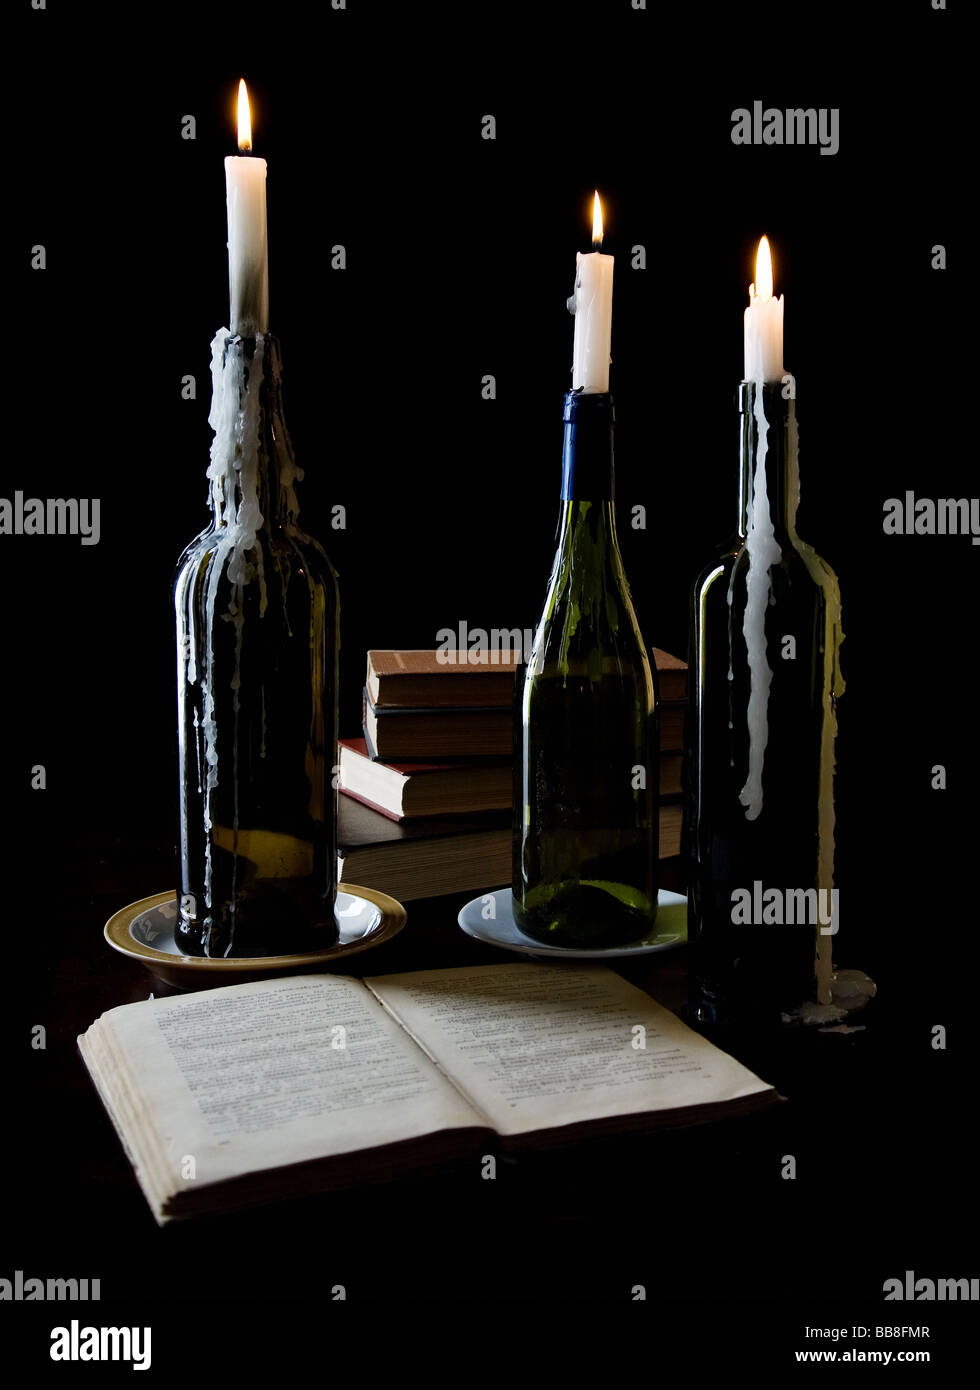 Three candles and books on black background - Stock Image